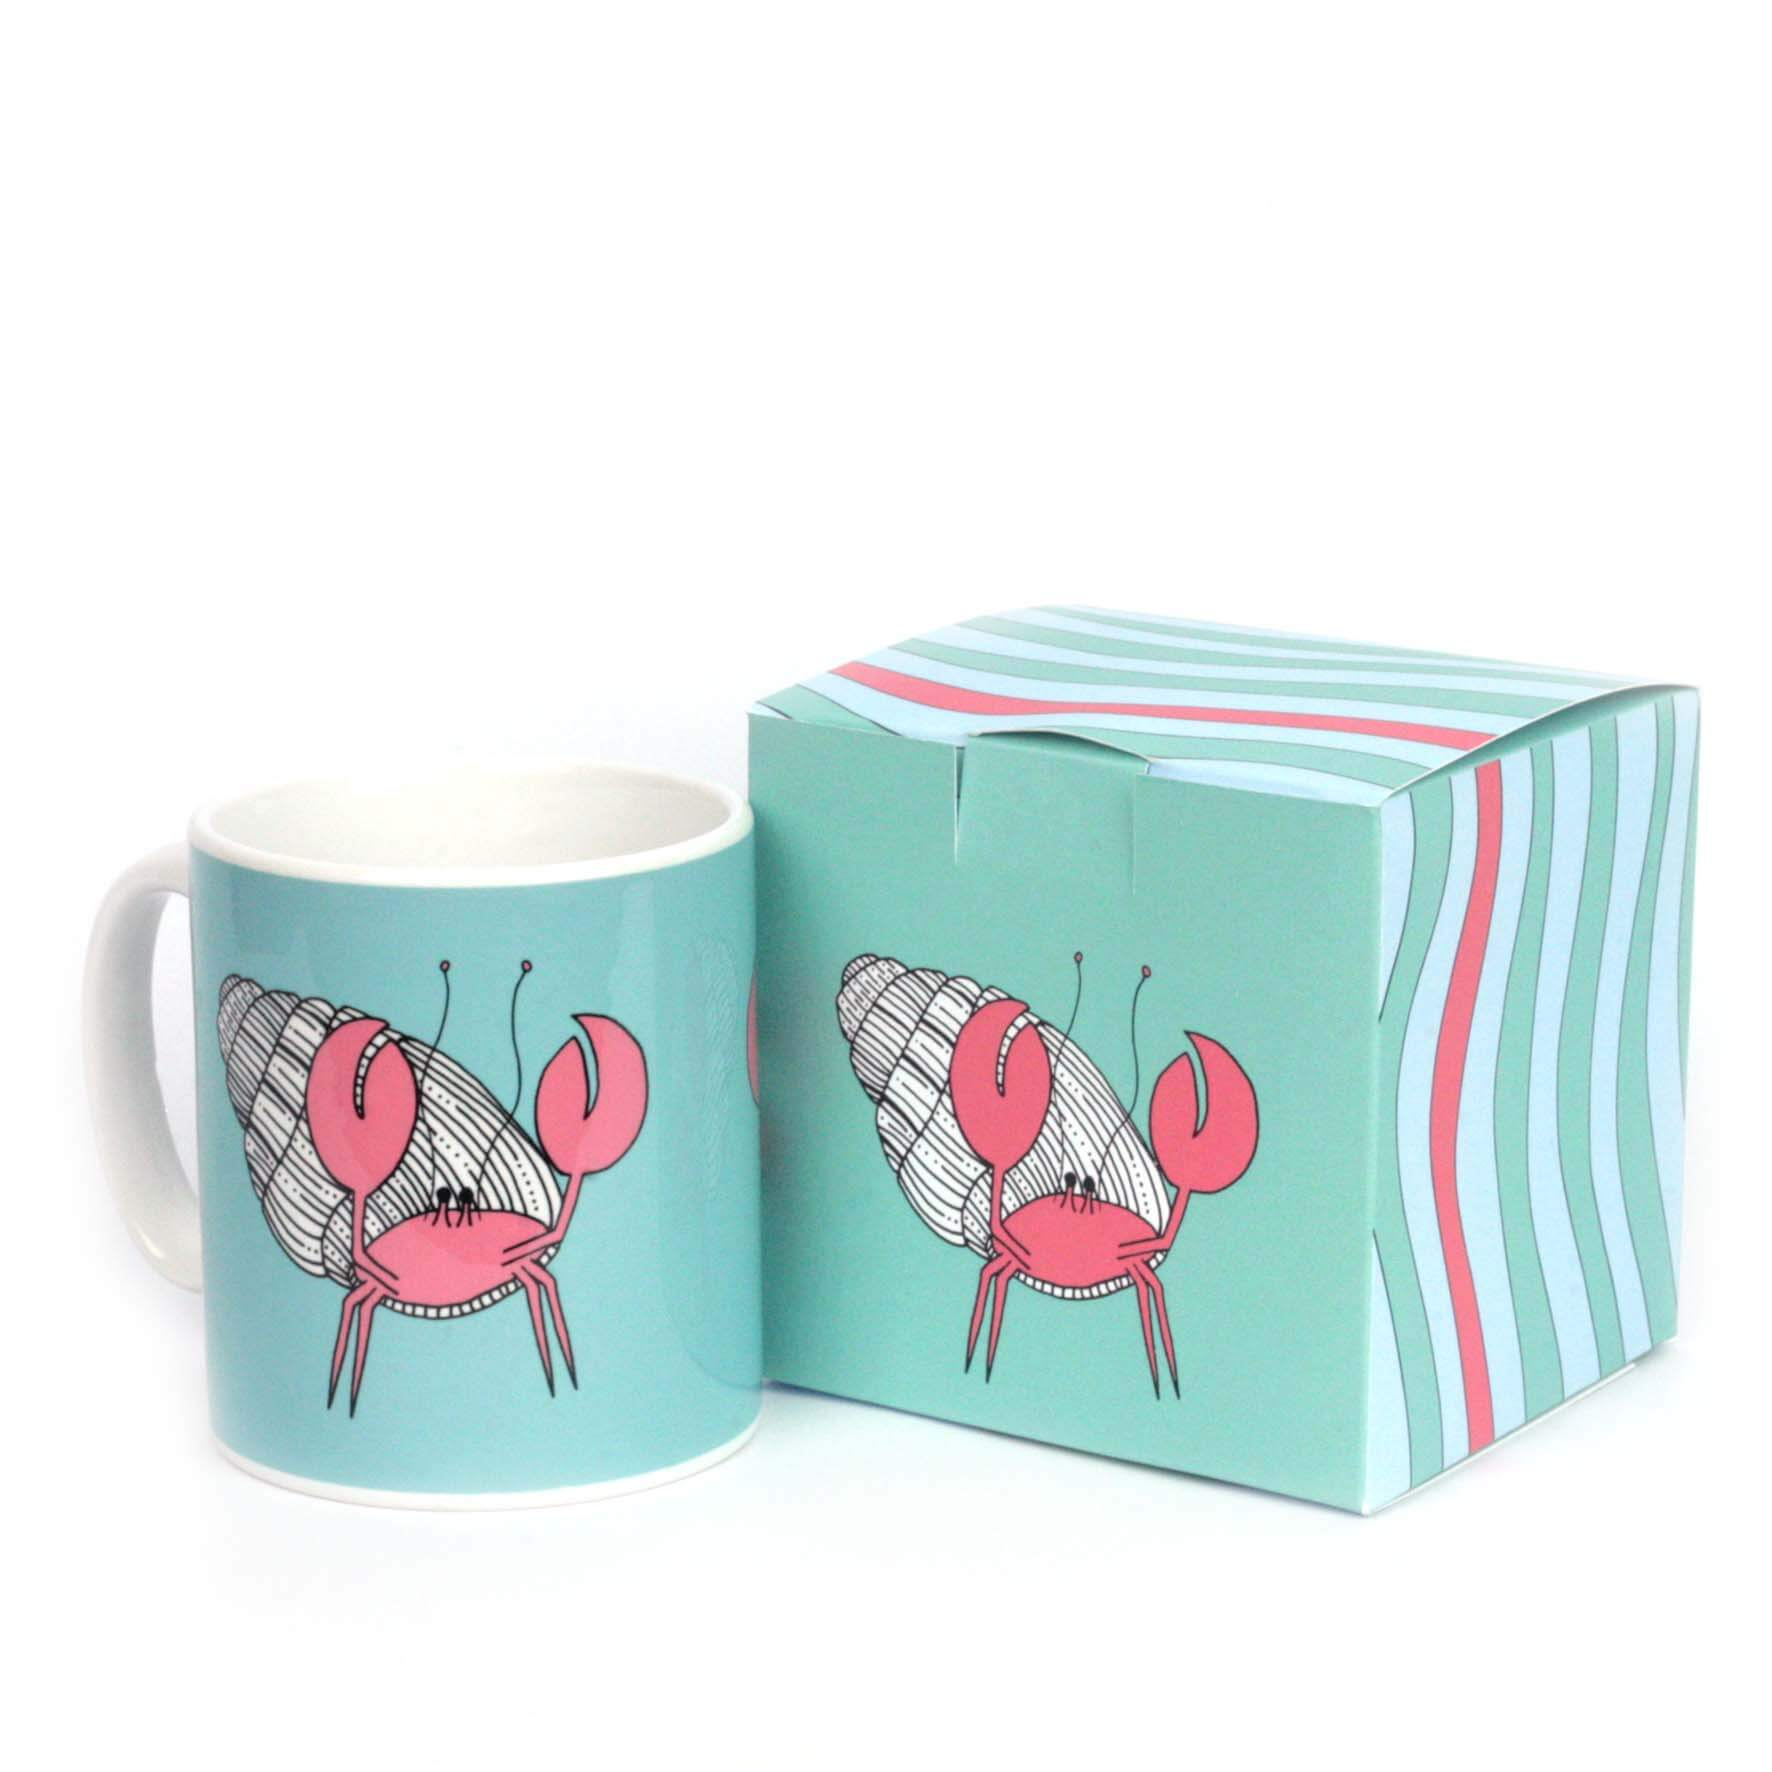 Turquoise mug with gift box featuring an illustration of a hermit crab